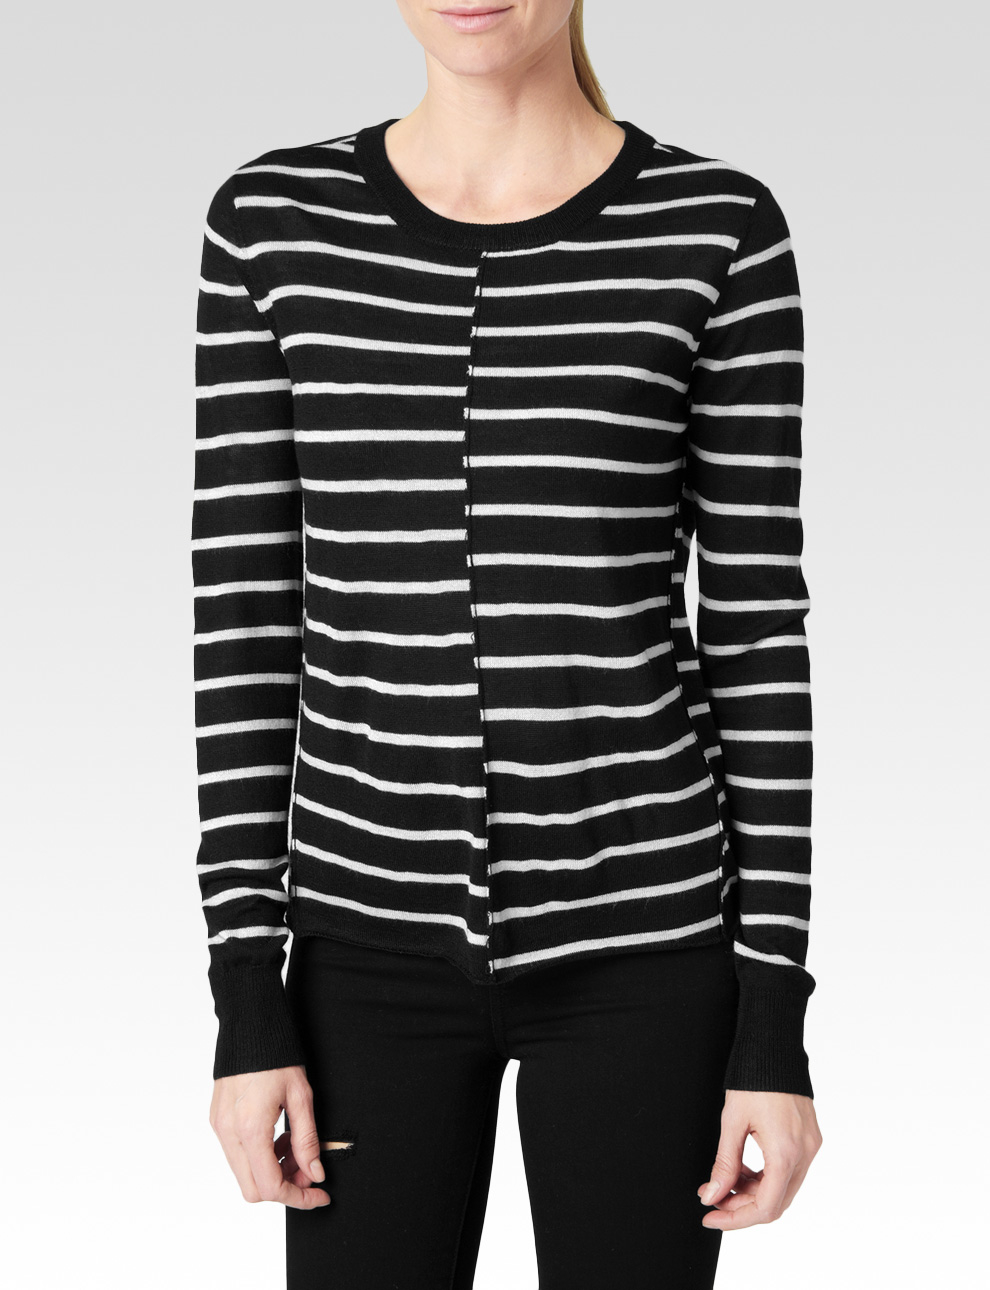 A black and white striped sweater is the perfect foundation piece to pair with solid black, solid white, or camel. Pair your sweater with black leather leggings, high-heeled boots and a chic camel blazer or jacket for a fashionable daytime outfit.